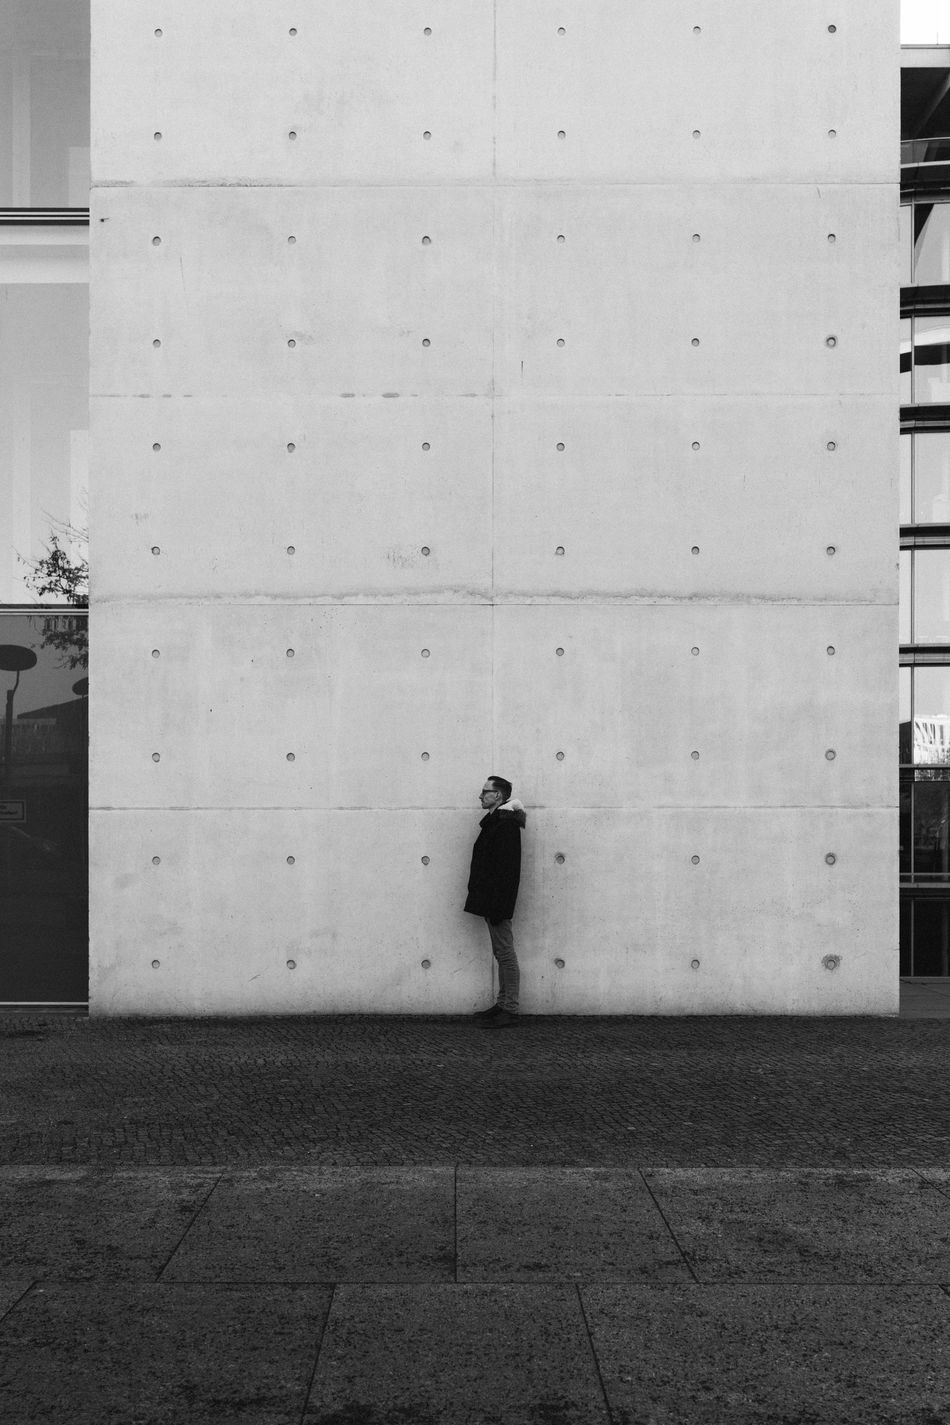 Man standing in front of huge concrete wall Adult Architecture Architecture Building Exterior Built Structure City Comparison Concrete Day Full Length Human Man Men One Person Outdoors People Real People Scale  Size Small People Standing Welcome To Black